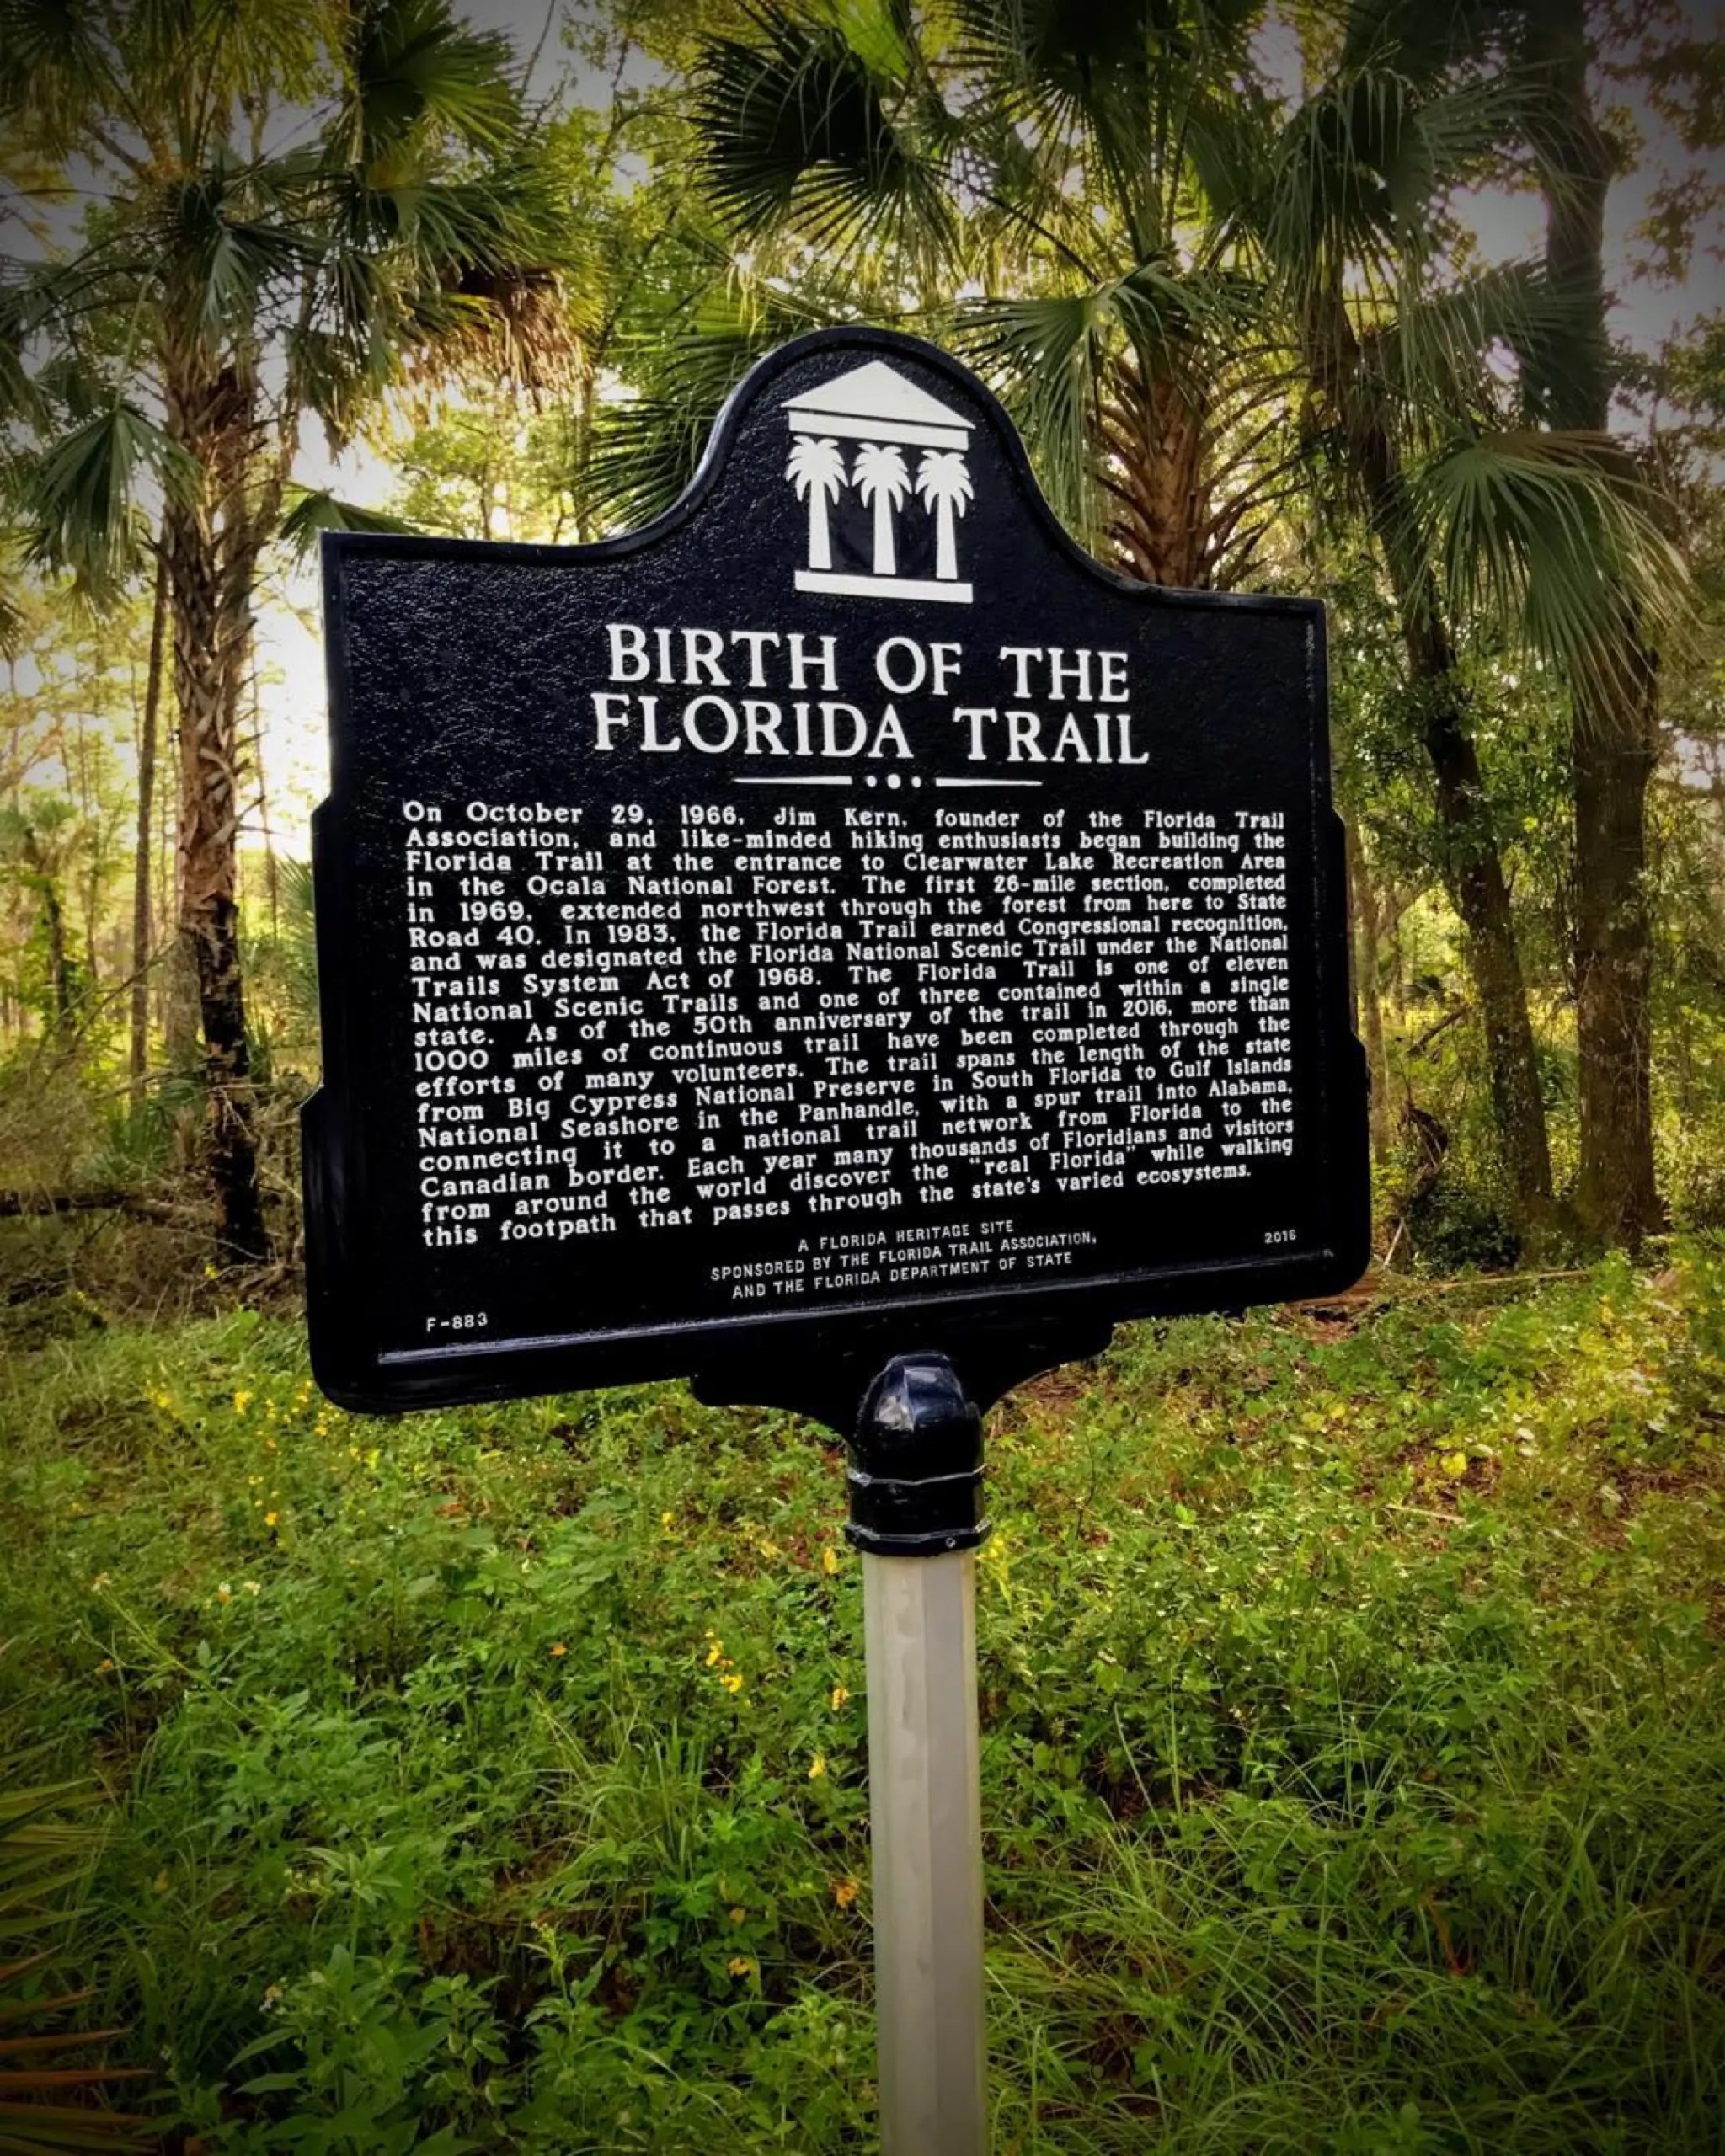 The Best Months to Hike the Florida Trail